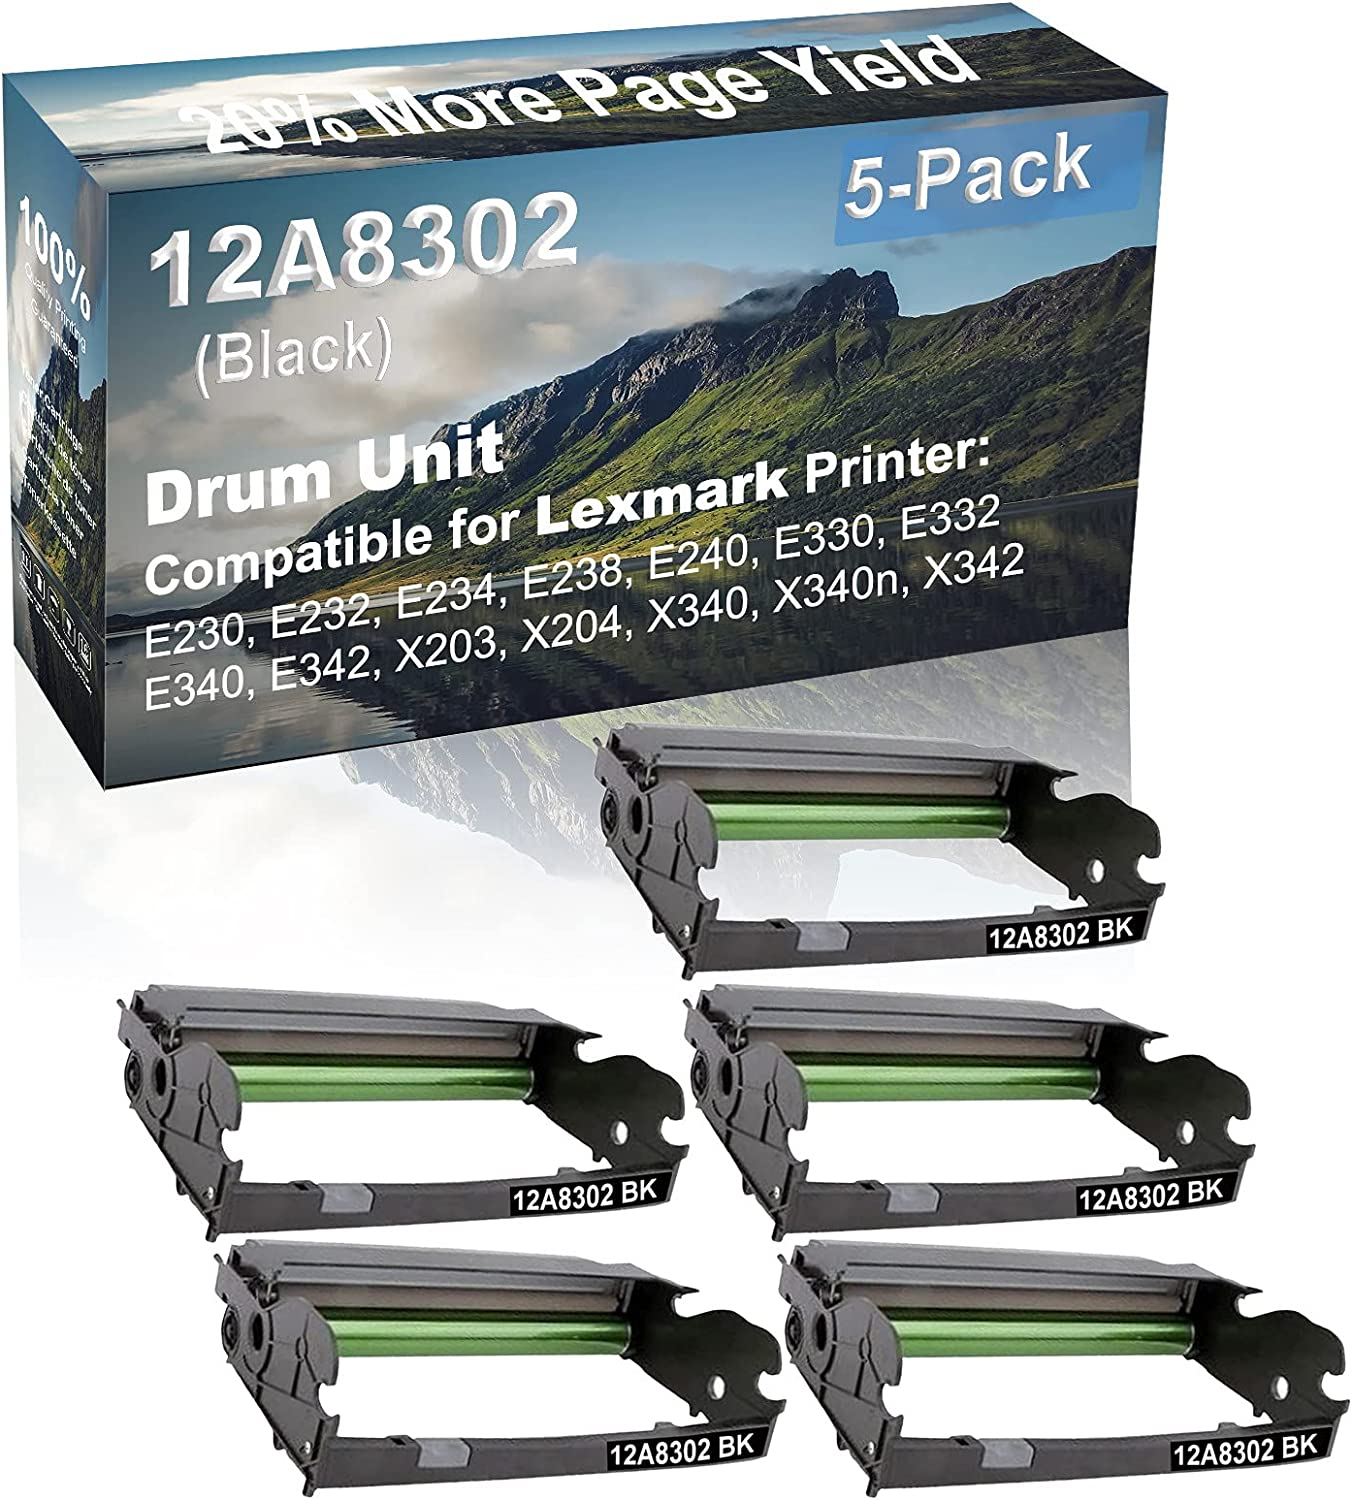 5-Pack (Black) Compatible X203, X204, X340, X340n, X342 Printer Drum Unit Replacement for Lexmark 12A8302 X340H22G Drum Kit